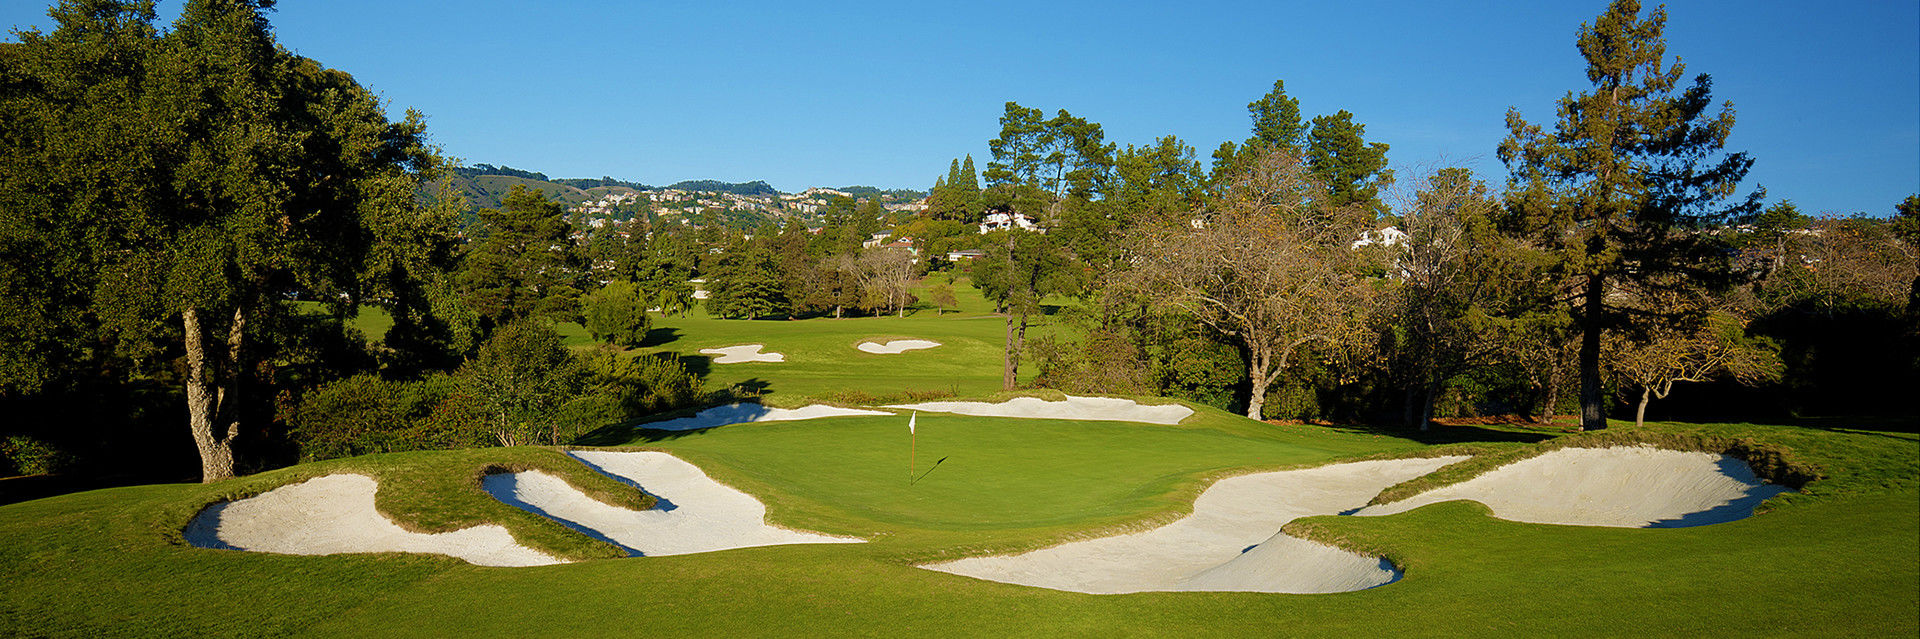 Claremont country club cover picture